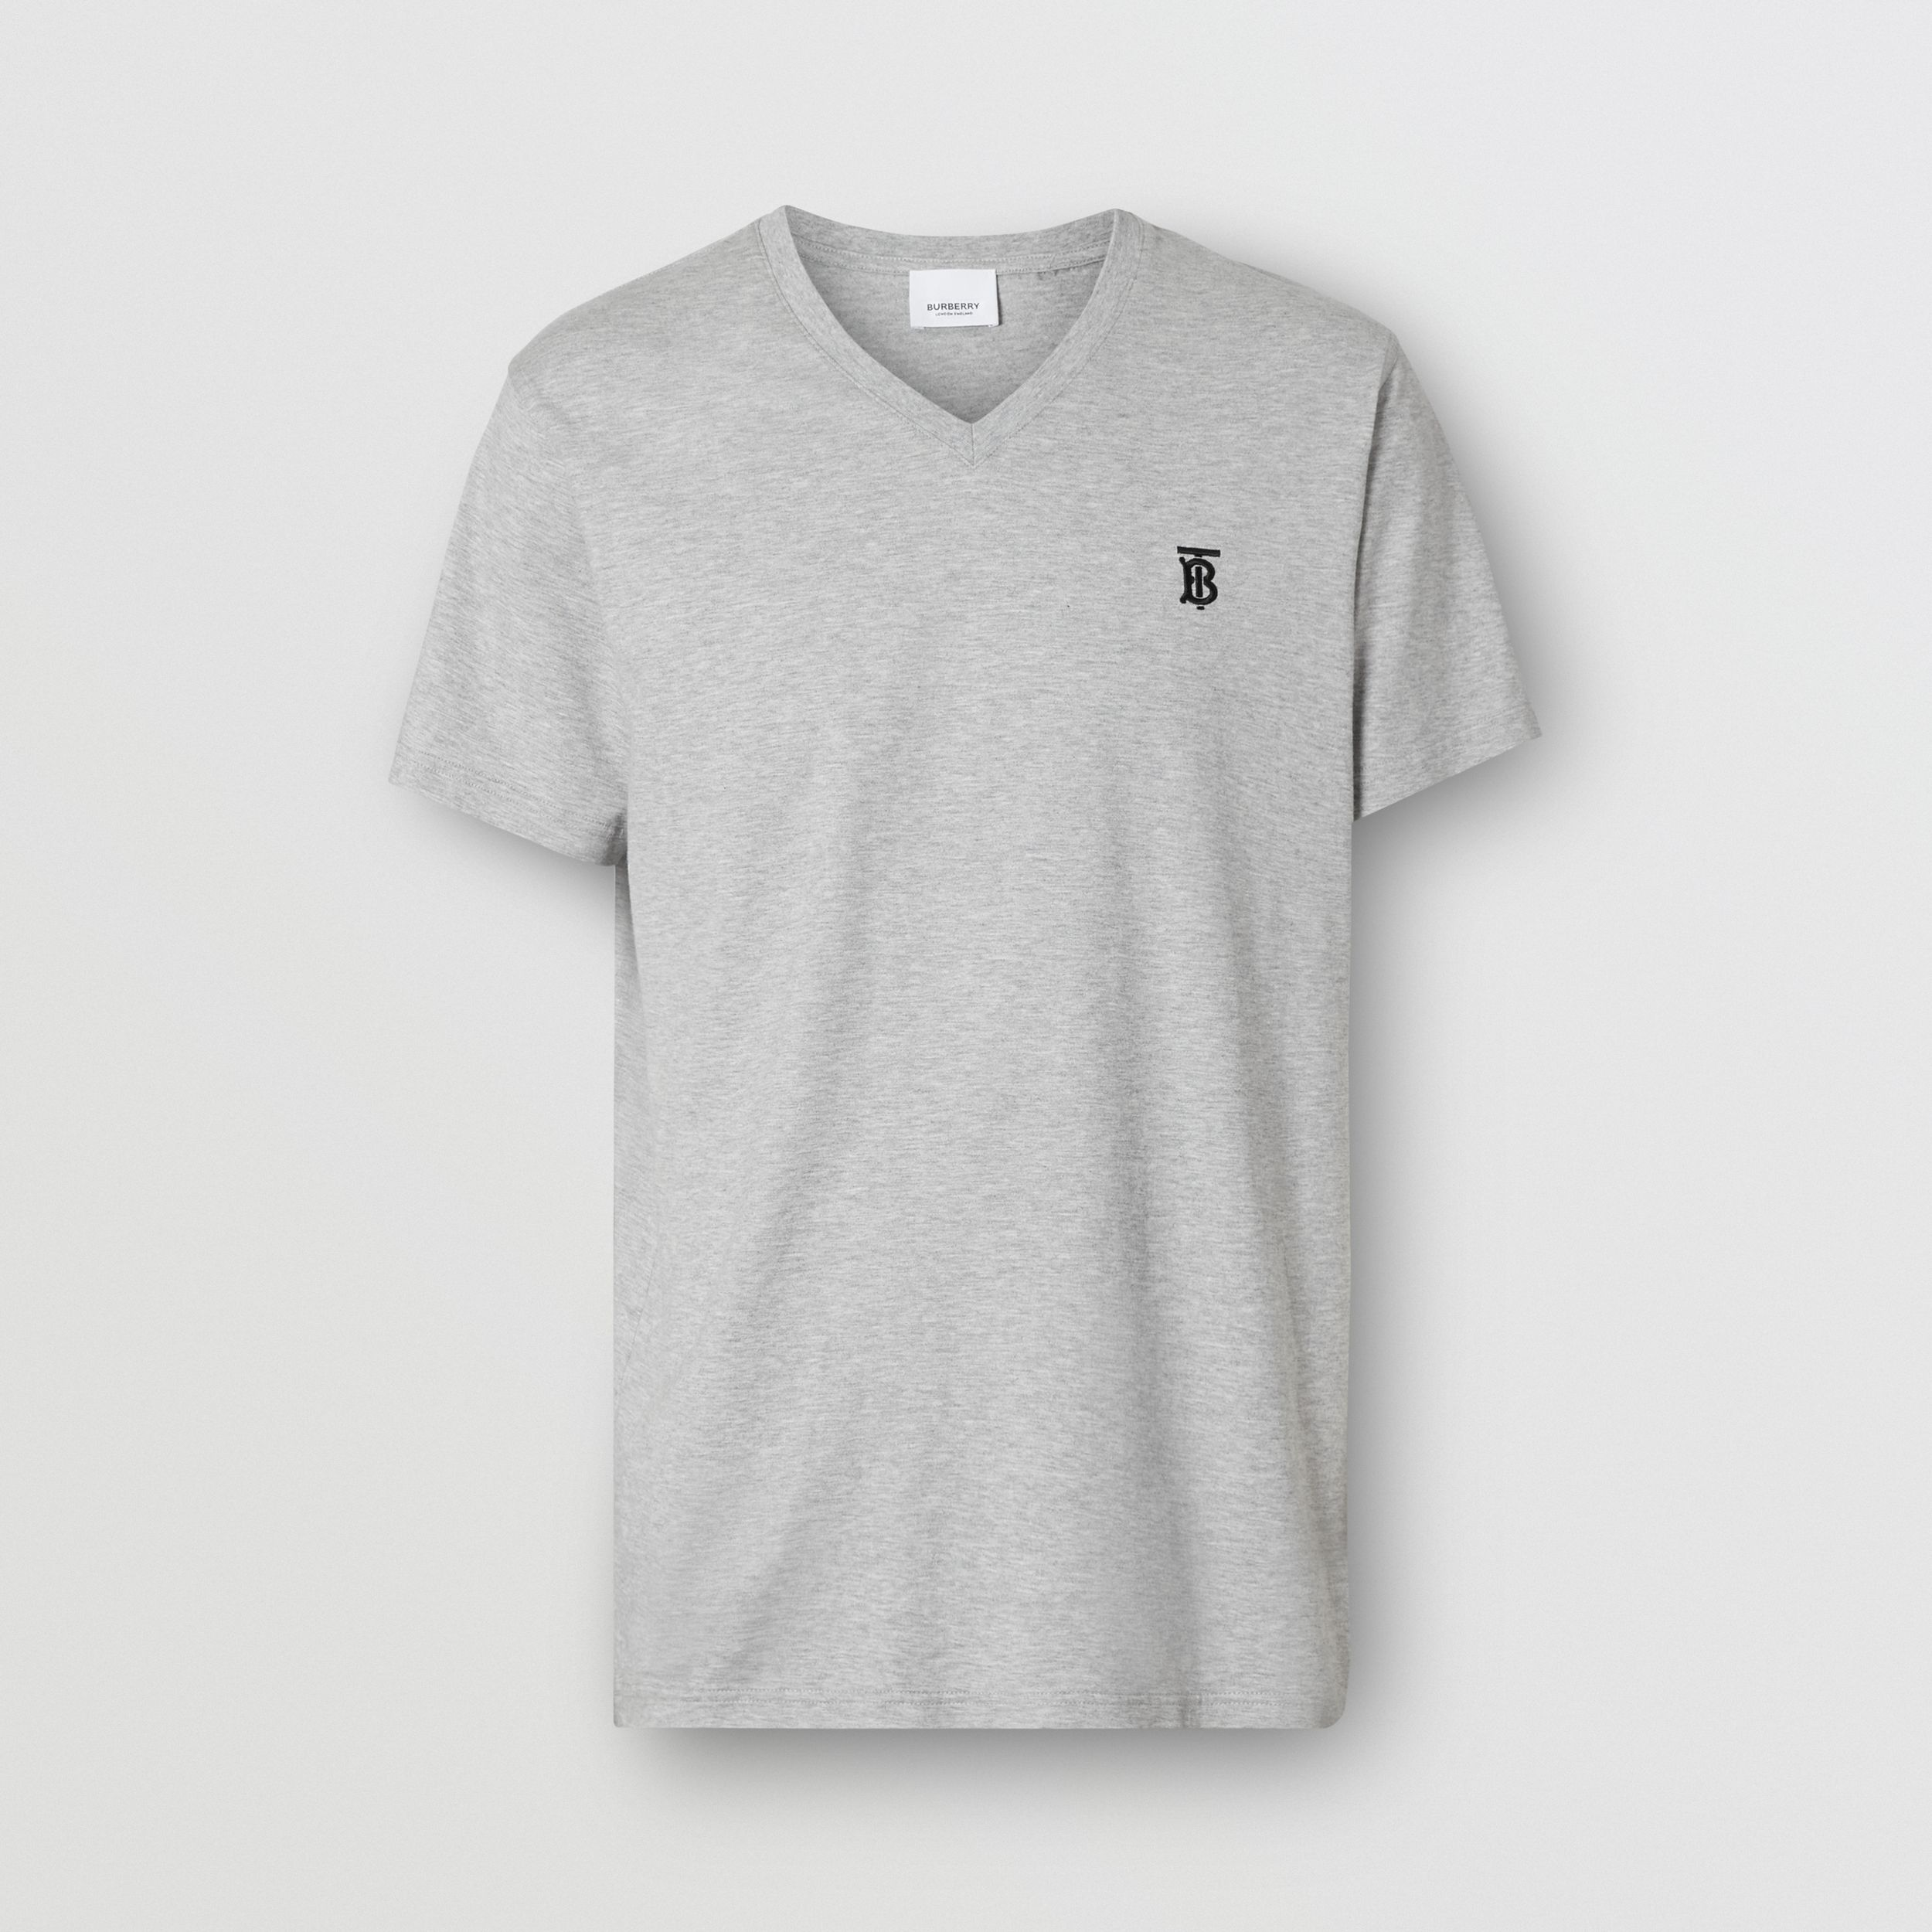 Monogram Motif Cotton V-neck T-shirt in Pale Grey Melange - Men | Burberry - 4